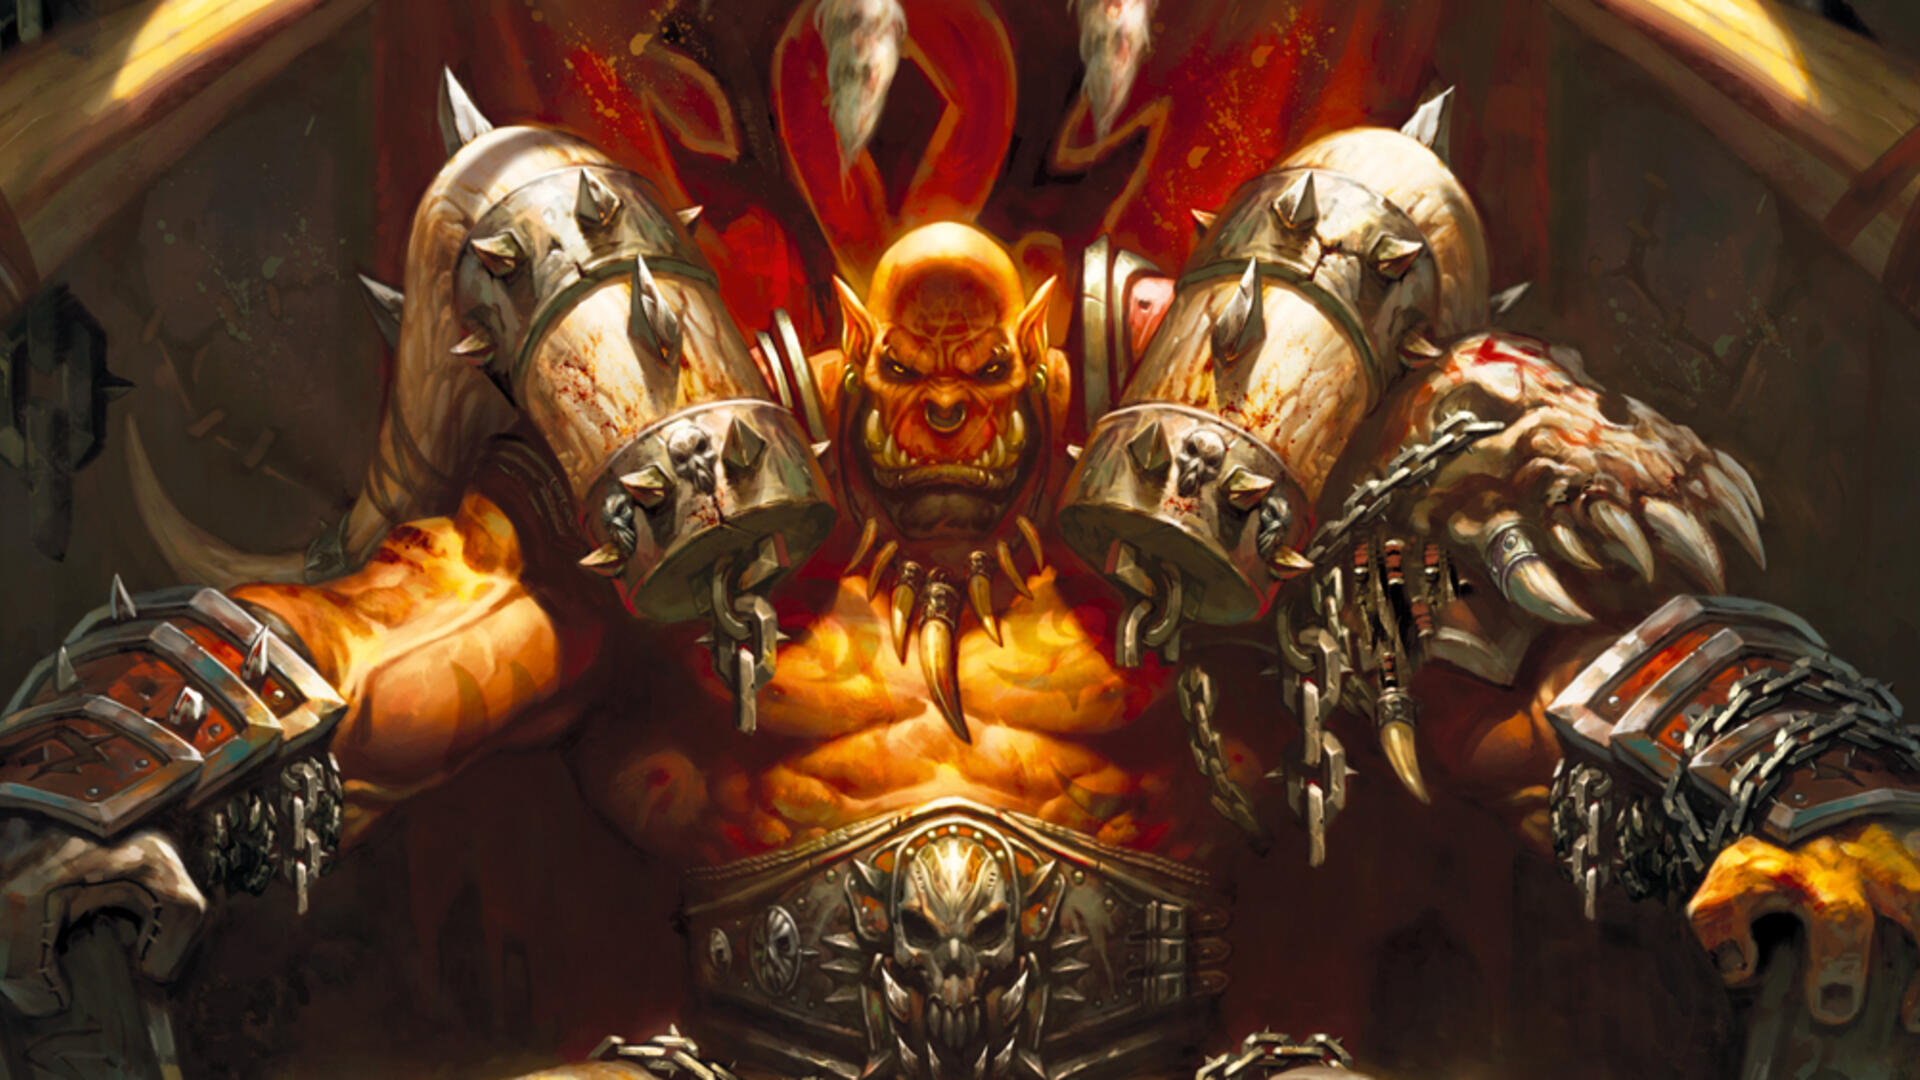 Hearthstone Guide: How to Build the Best Decks with Basic Cards, Starter Strategies and Tips